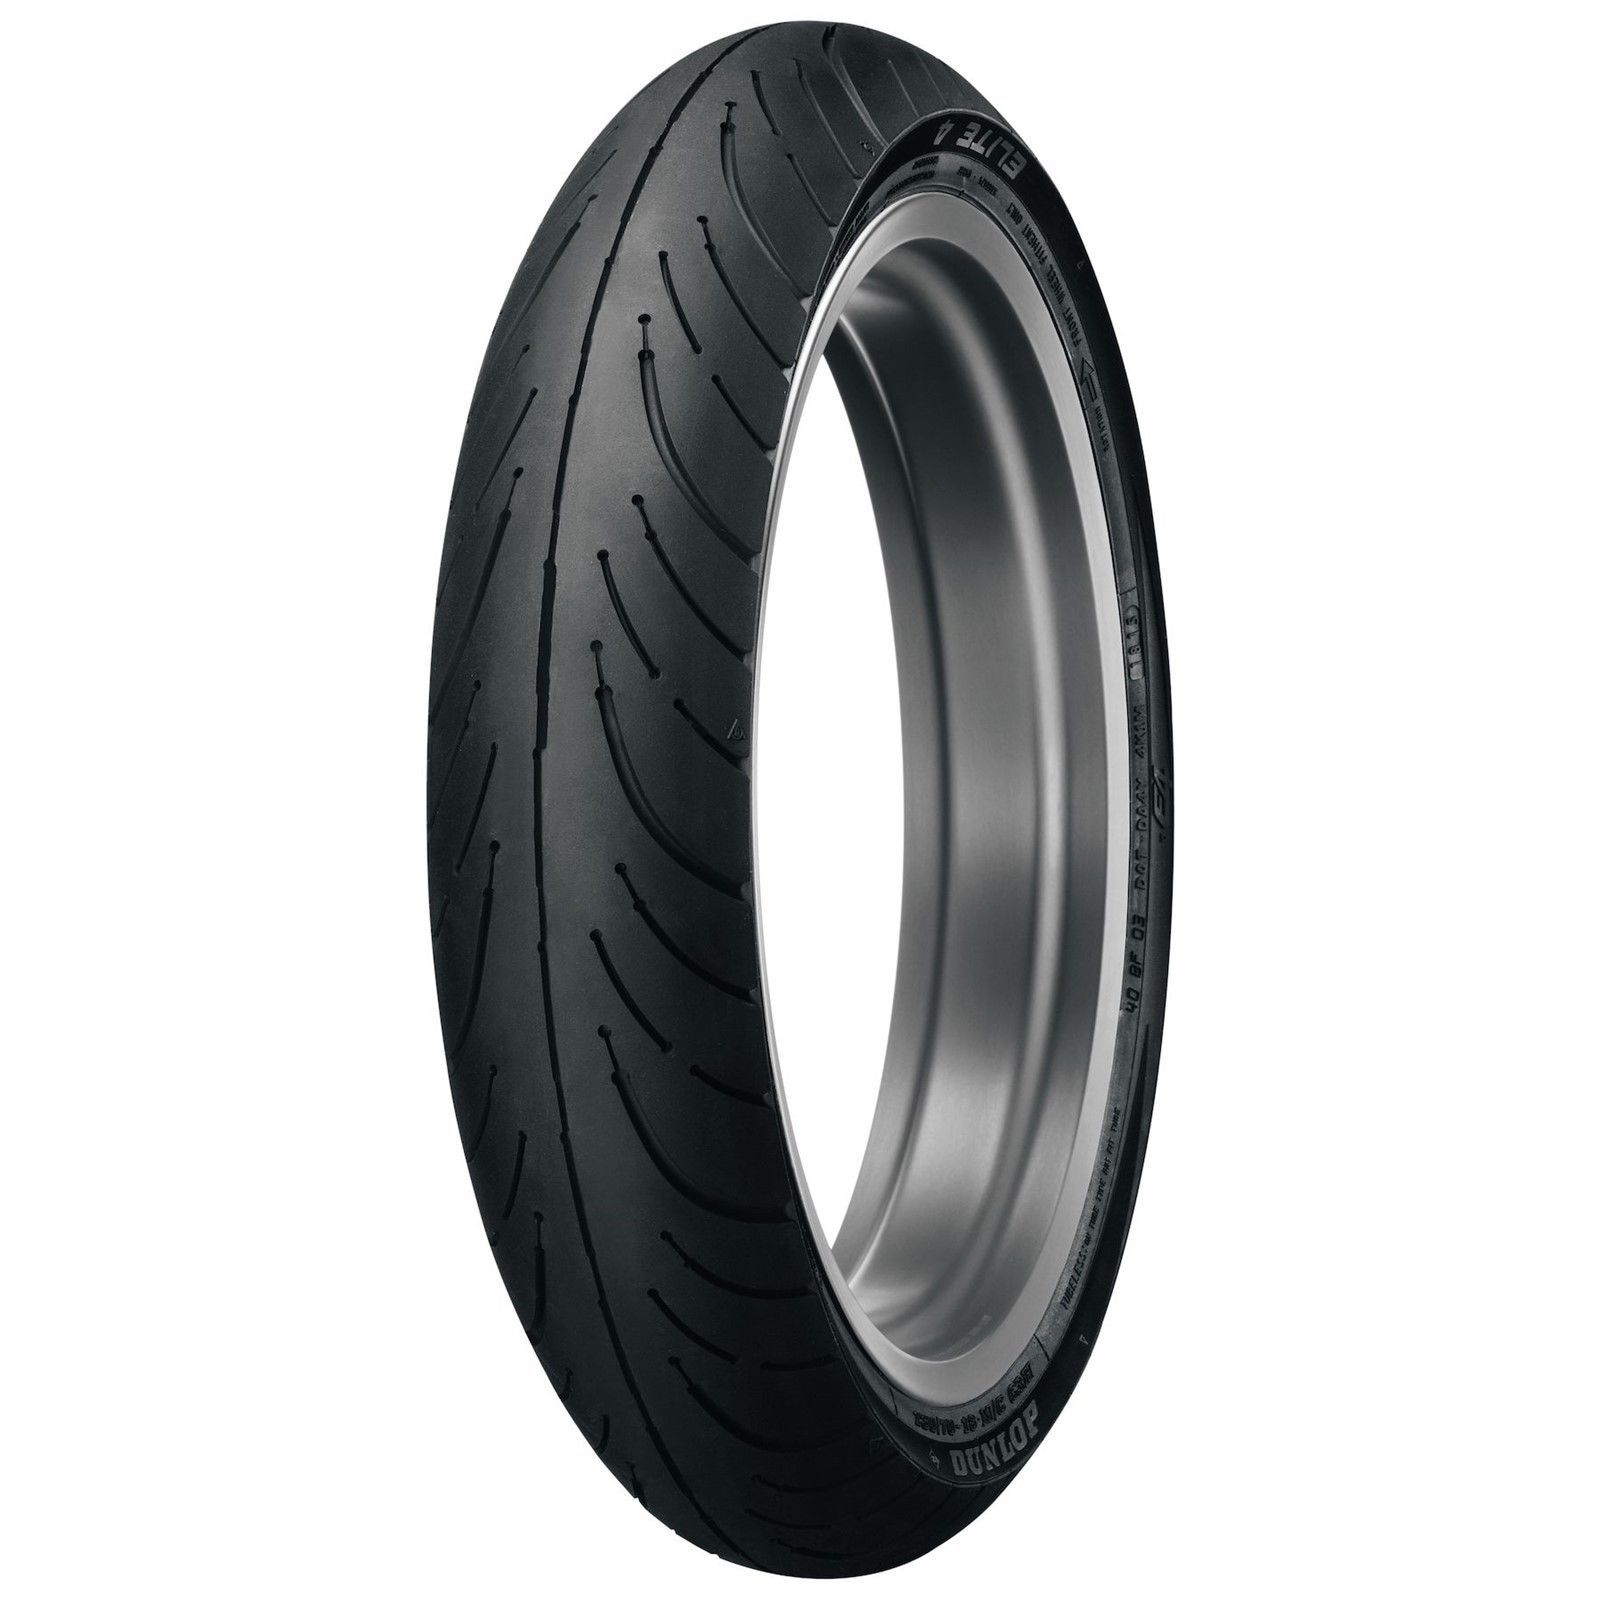 New Dunlop Elite 4 120/90-18 Bias Front Motorcycle Tire 65H High Mileage